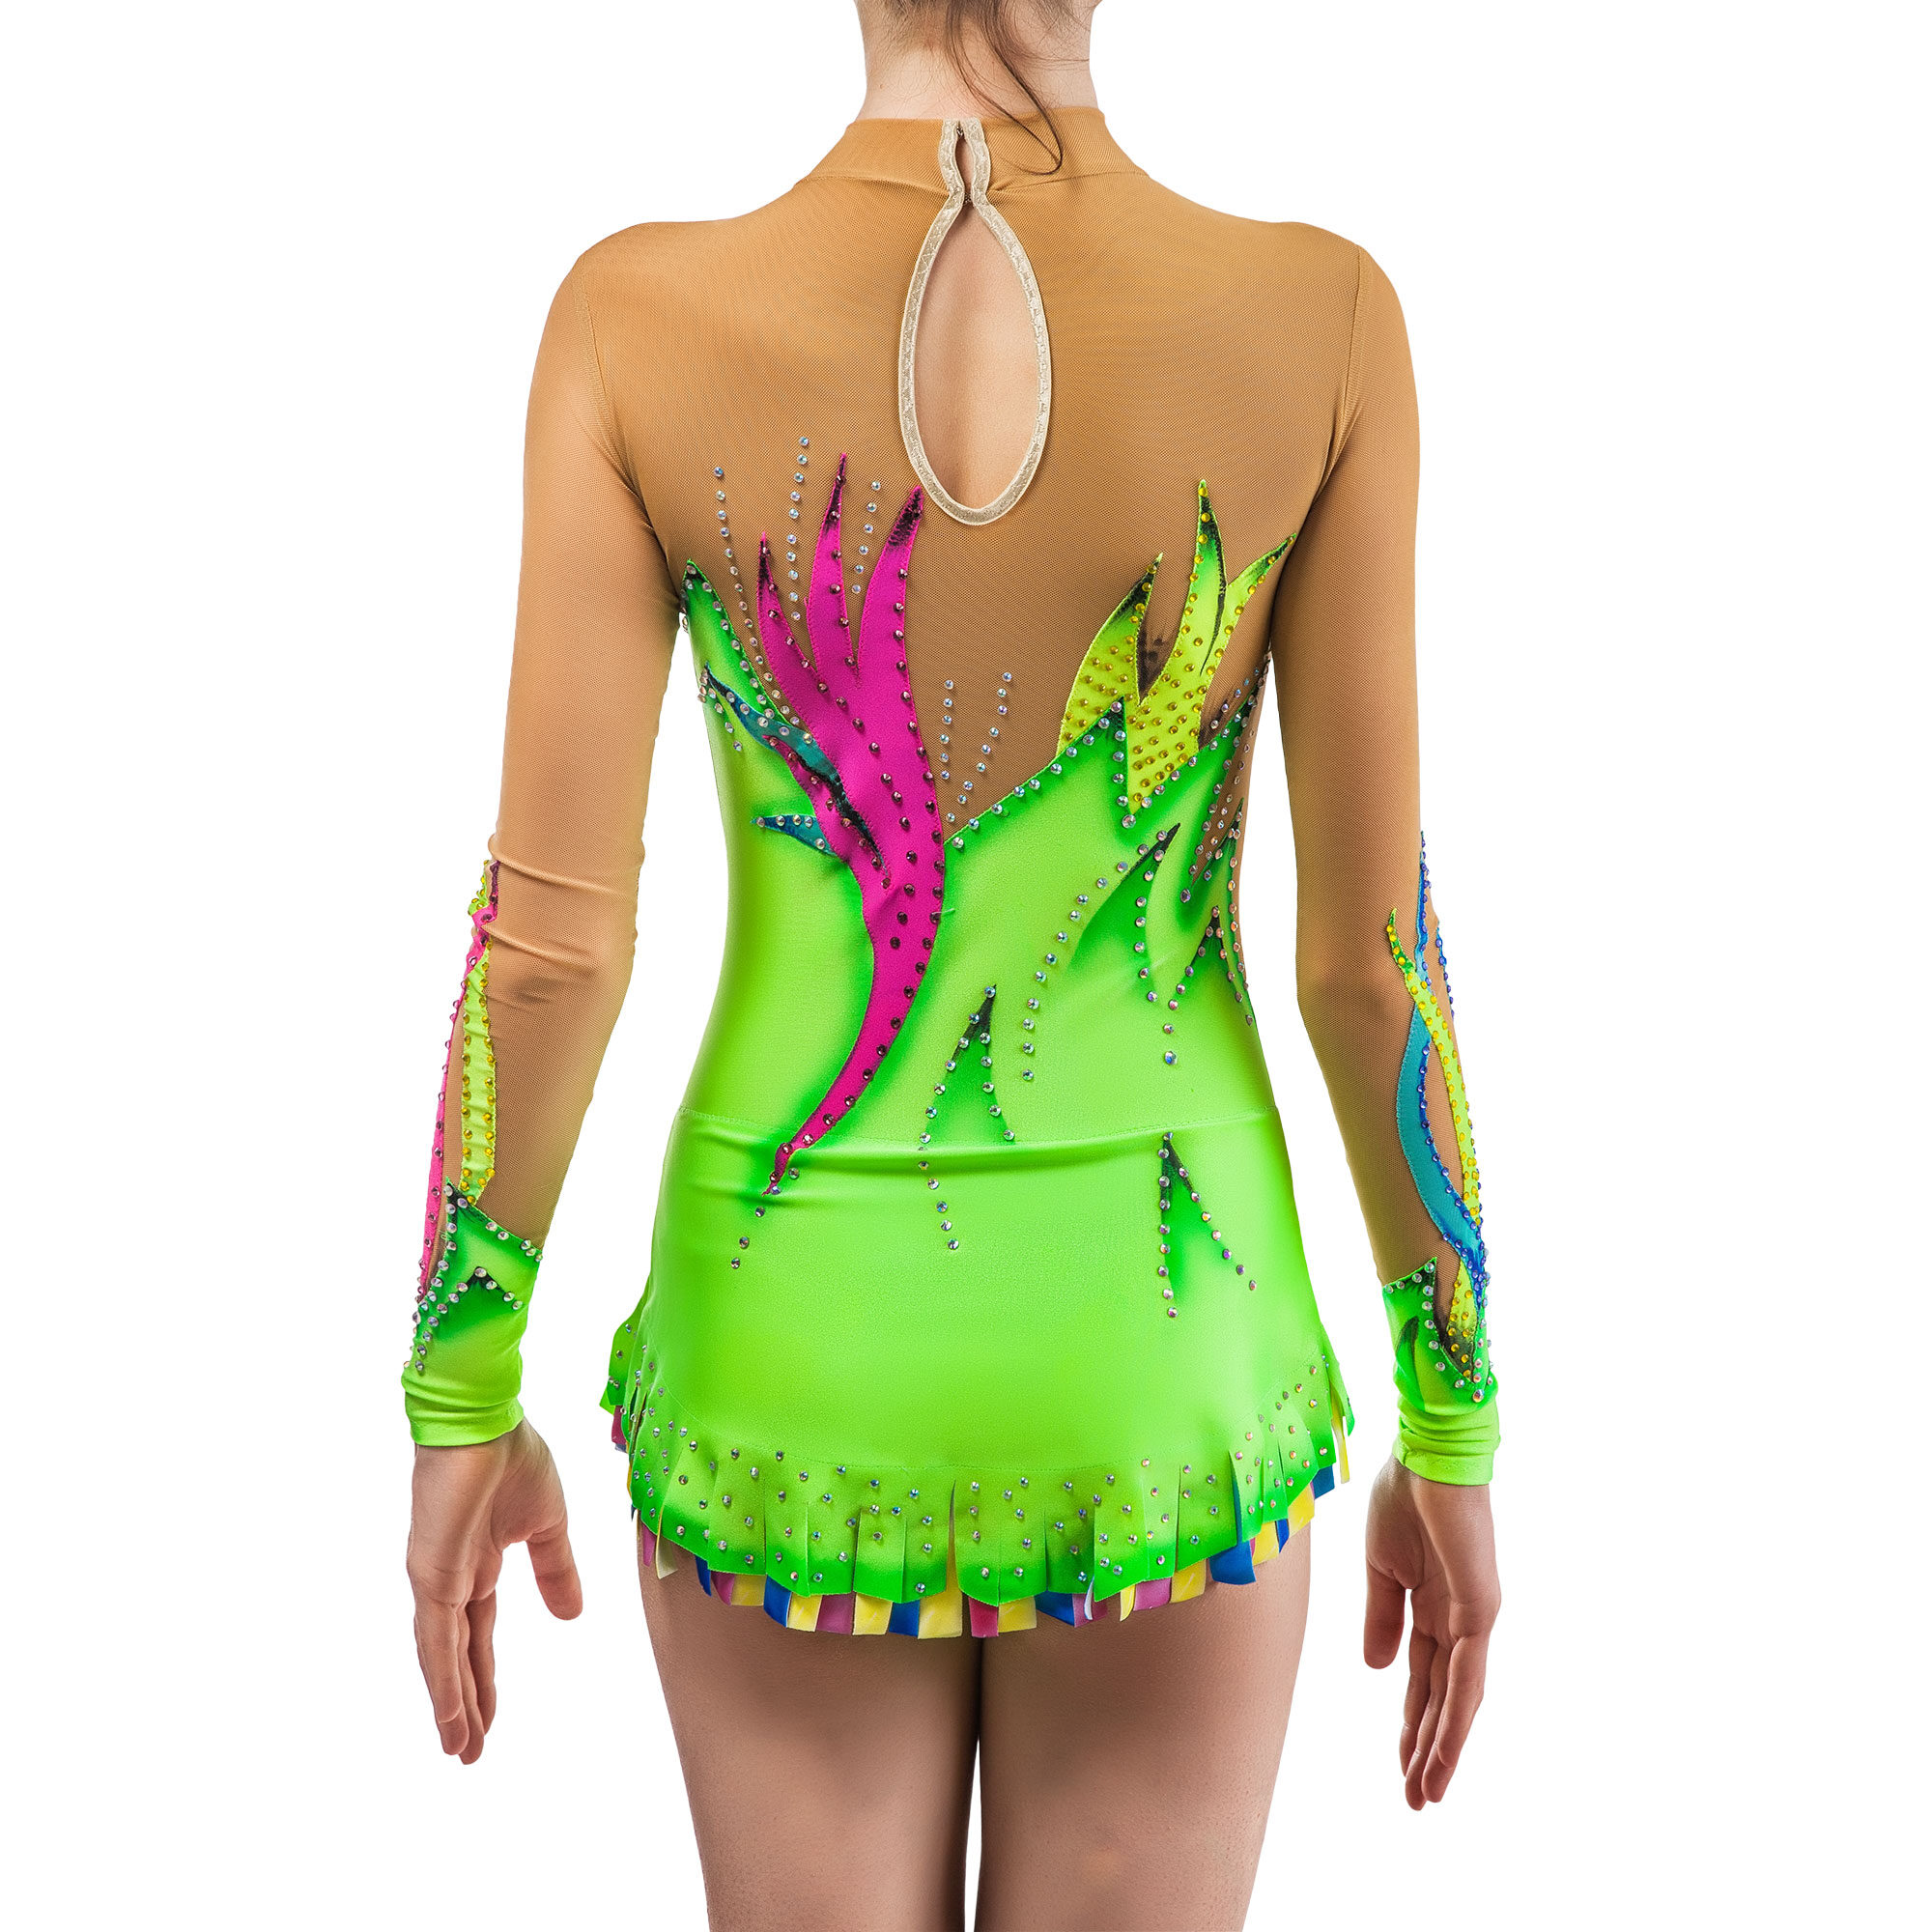 Rhythmic Gymnastics Leotard № 169 could be sewn as Rhythmic Gymnastics Dress, Ice Figure Skating Dress, Acrobatic Gymnastics Costume, Baton Twirling Suit or Dance Leotard. Colored magic lines convey a feeling of elegance